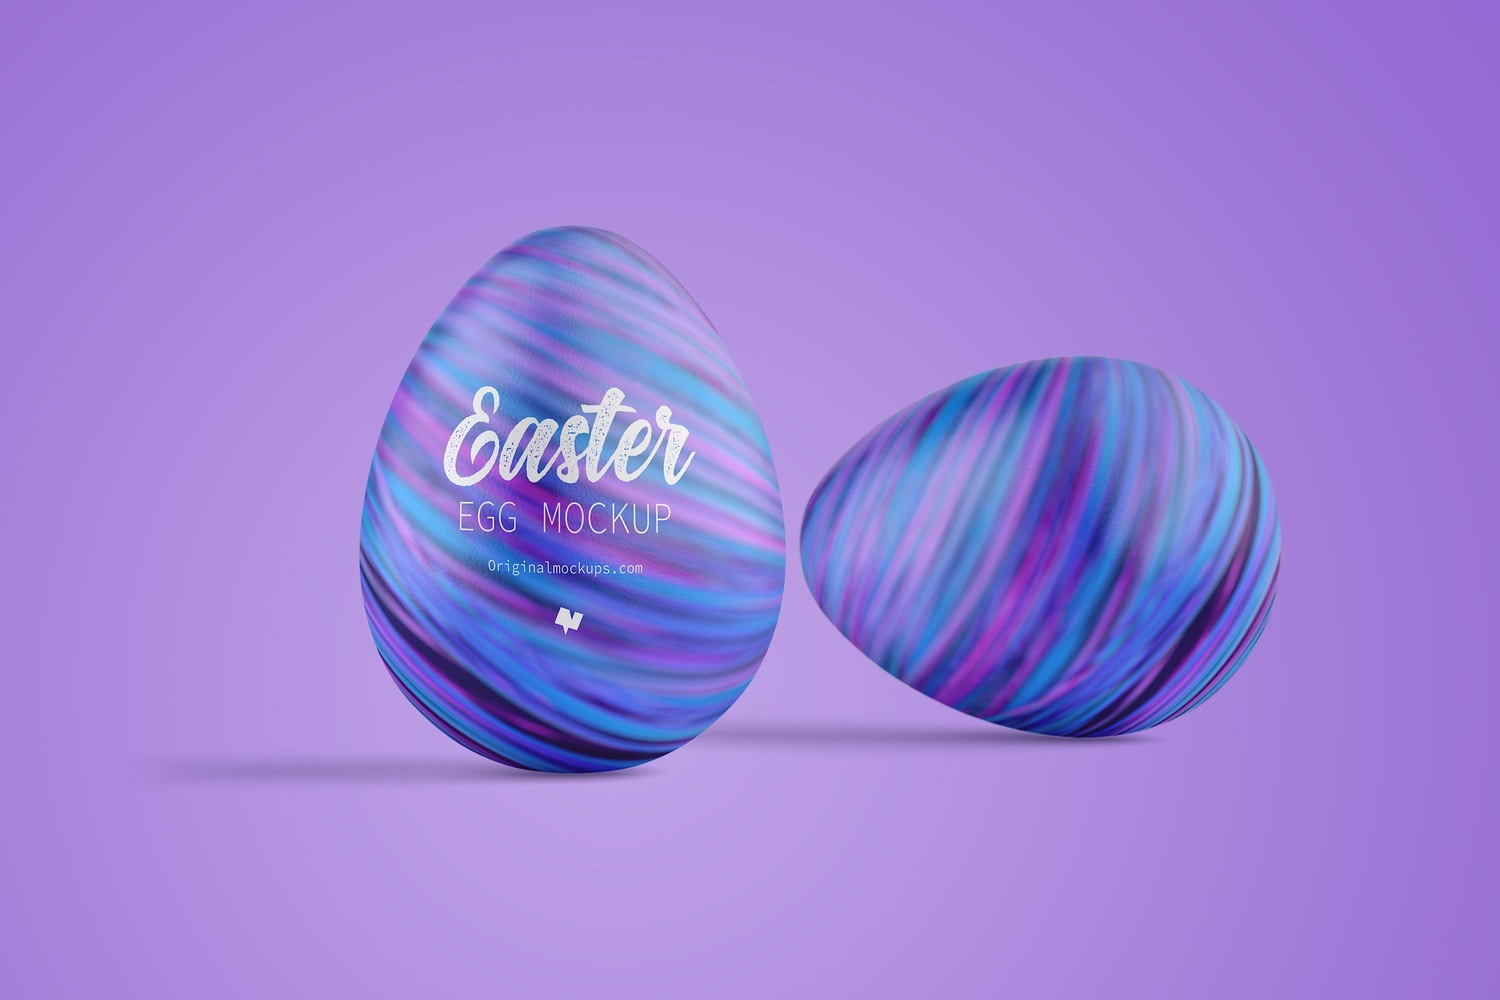 Easter Egg Mockup, Front View 02 by Original Mockups on Original Mockups